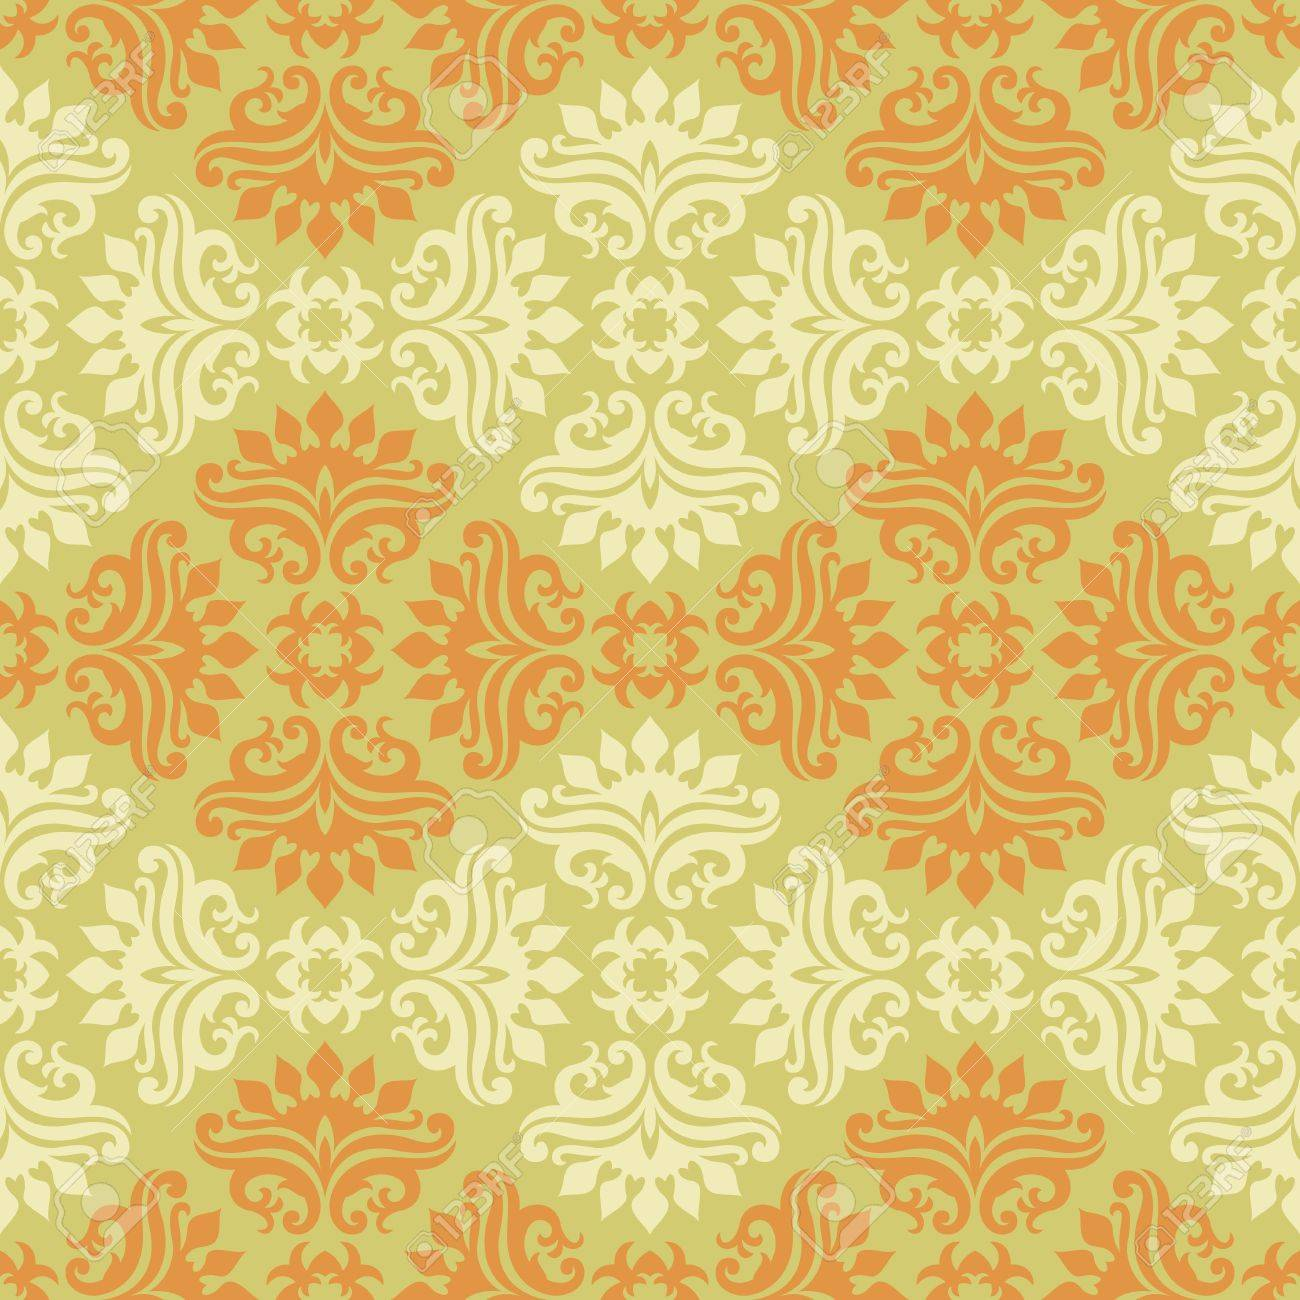 Seamless background from a floral ornament, Fashionable modern wallpaper or textile Stock Vector - 7011447